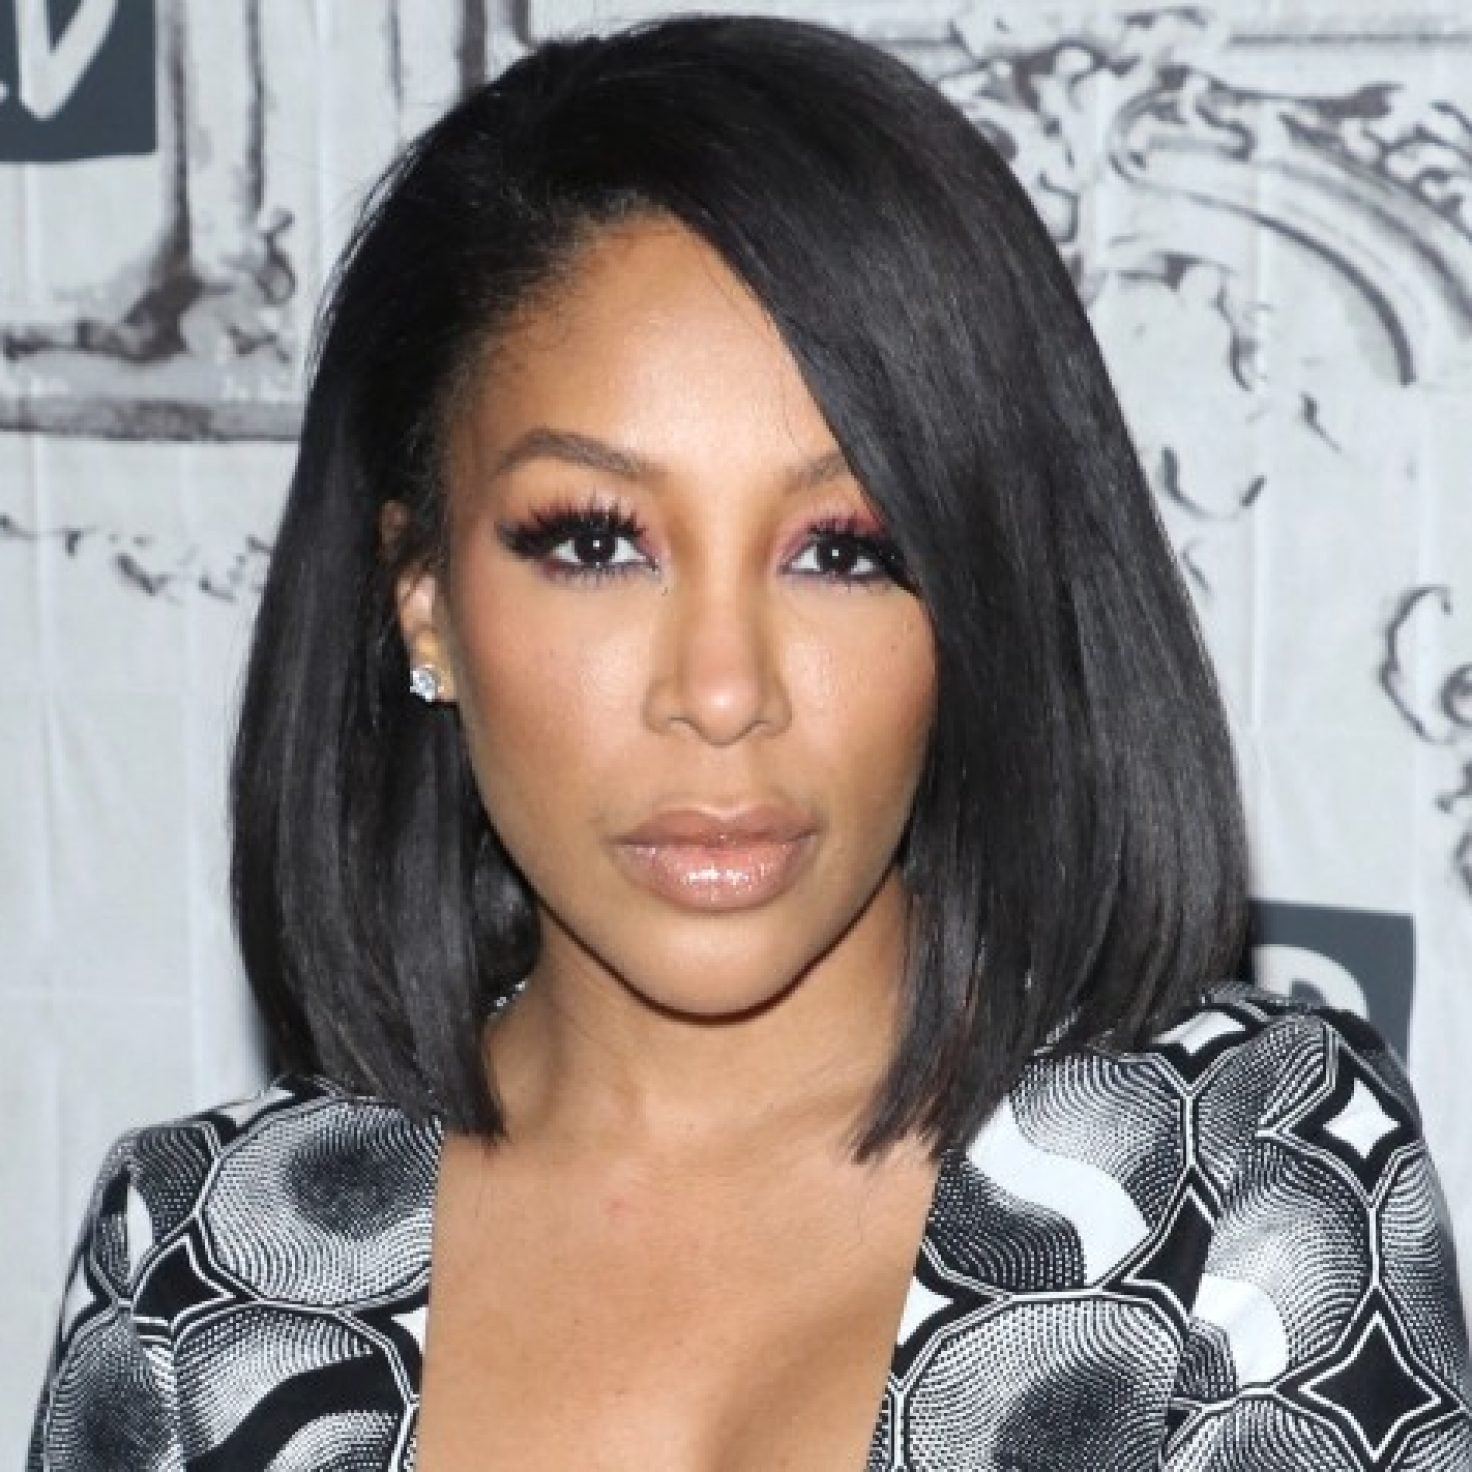 Naomi Campbell, K. Michelle, H.E.R. And Other Celebs Brought The Beauty This Week